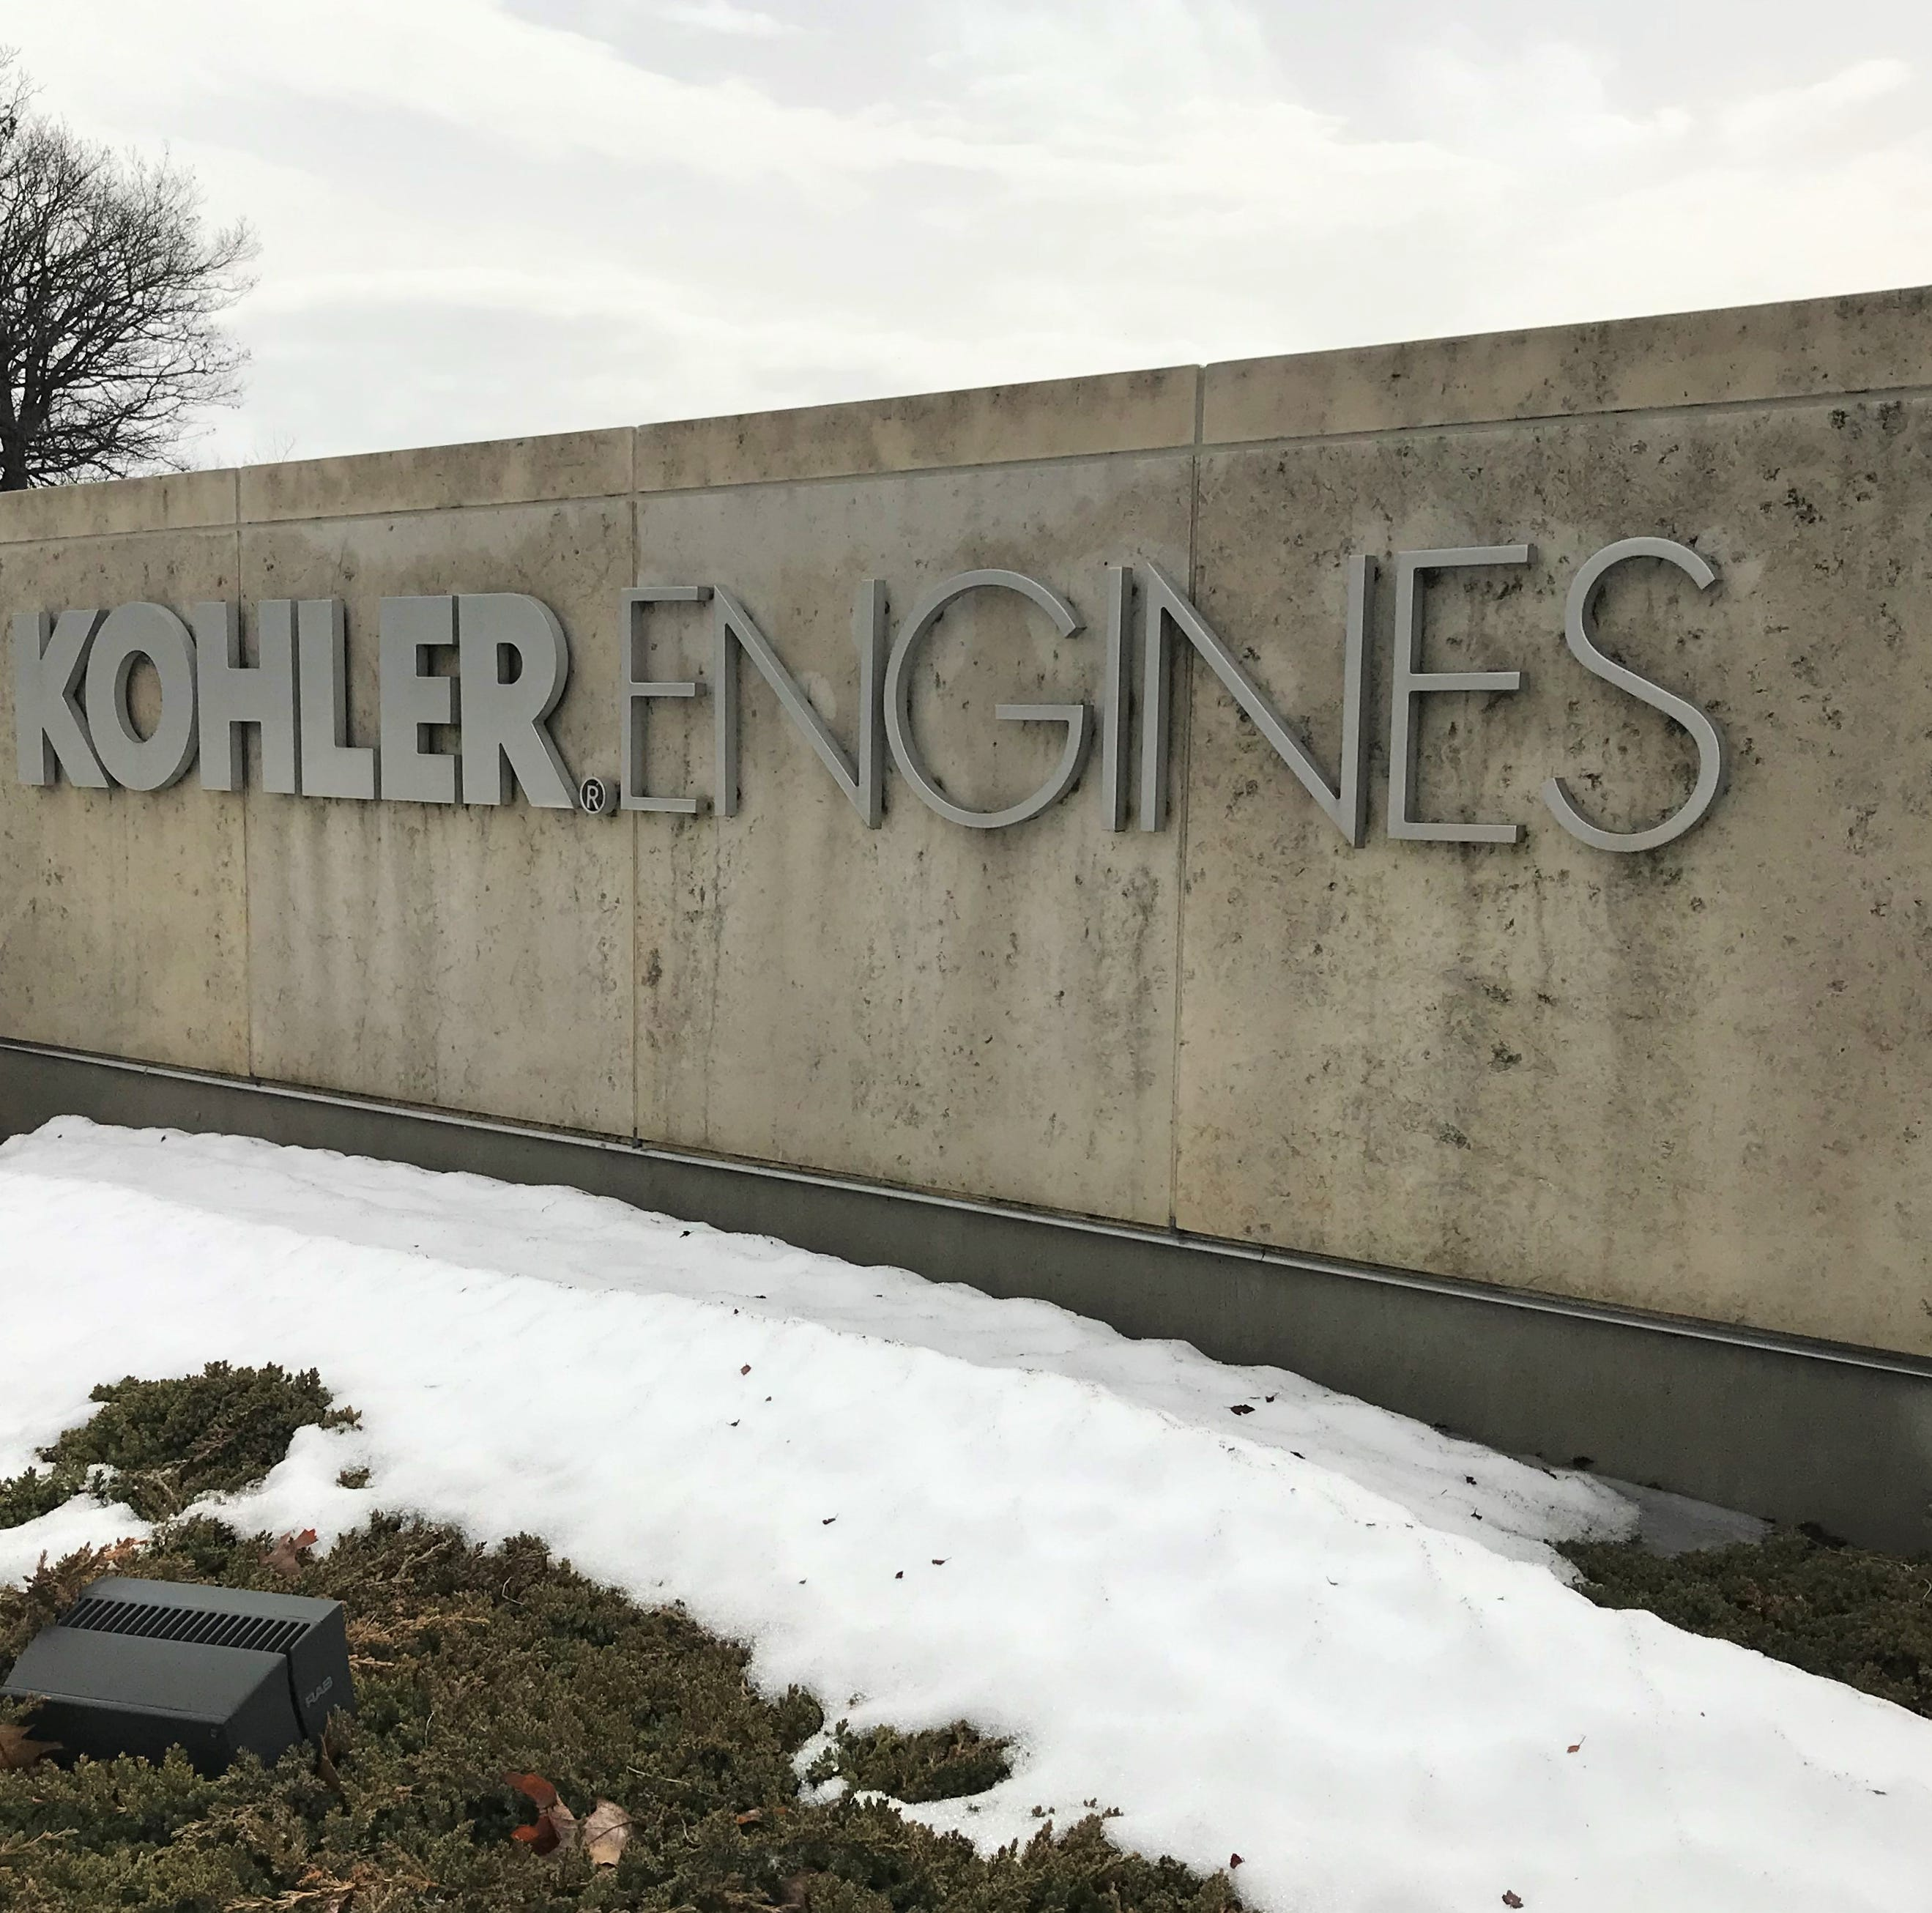 As some Kohler workers prepare to shift roles, the company affirms its local commitment